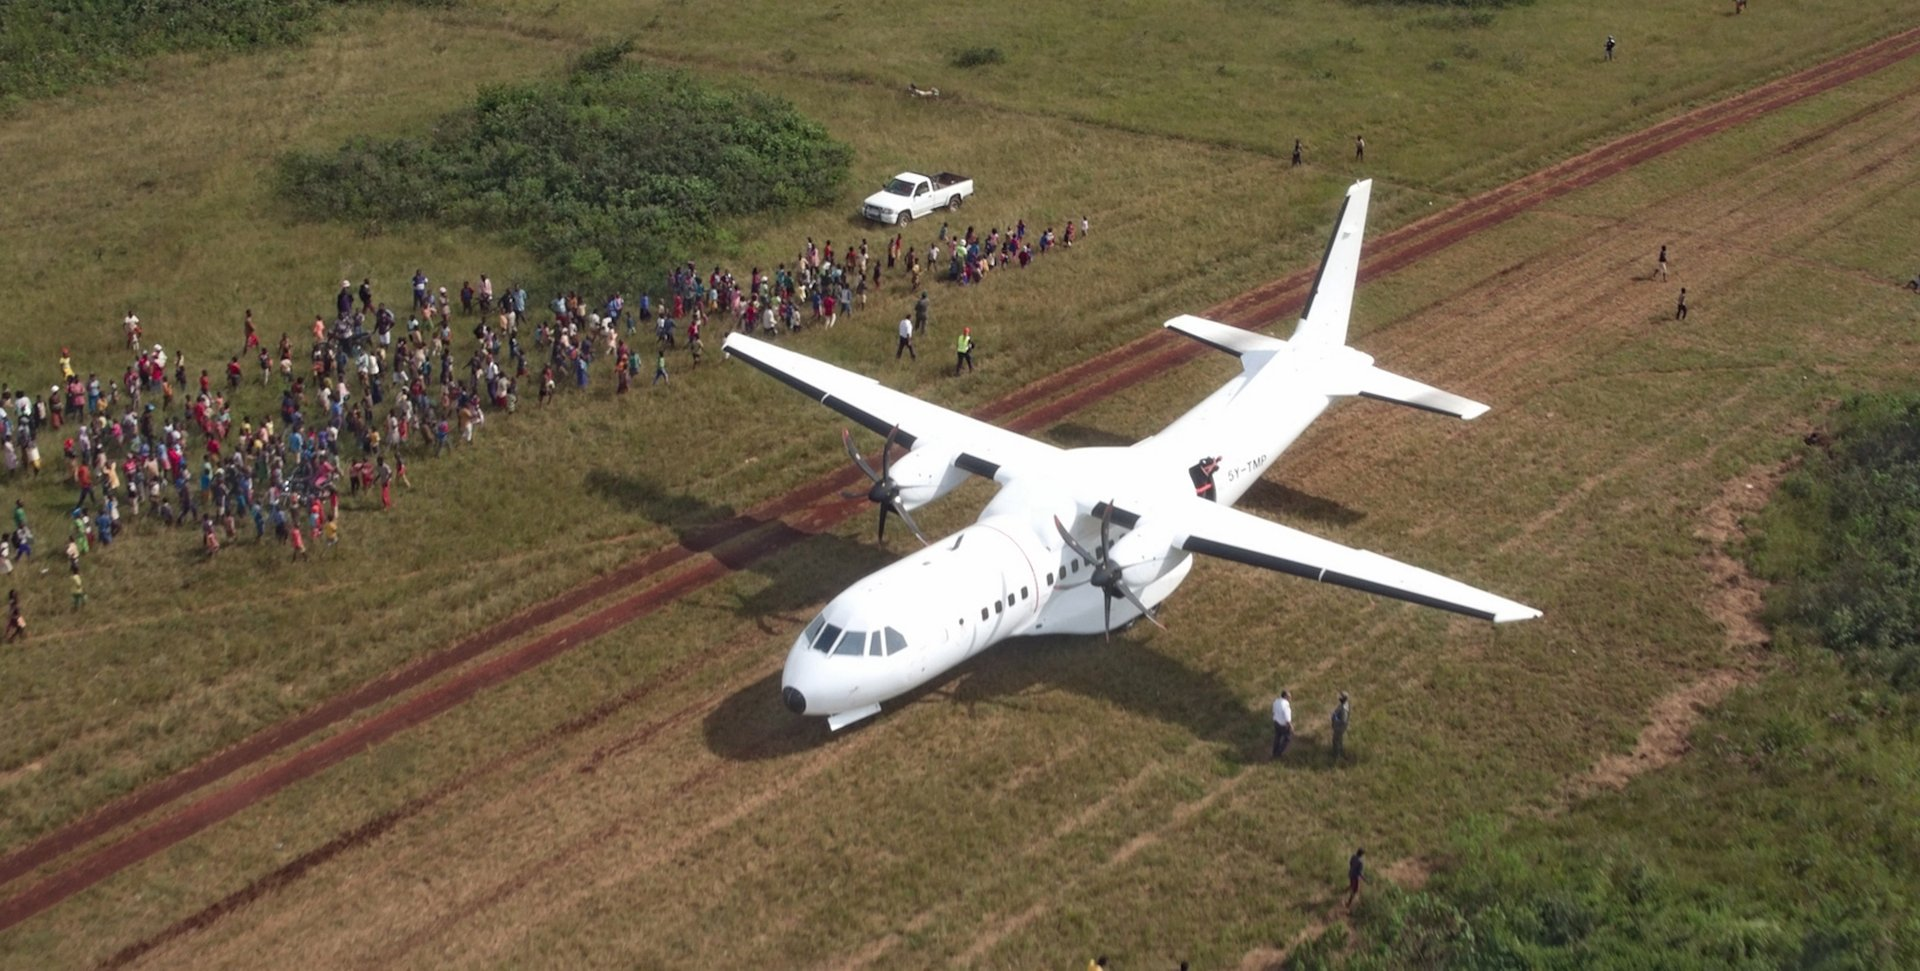 The Airbus C295 multi-role airlifter has proven its capabilities in life-saving humanitarian missions, including disaster relief operations in Mozambique.